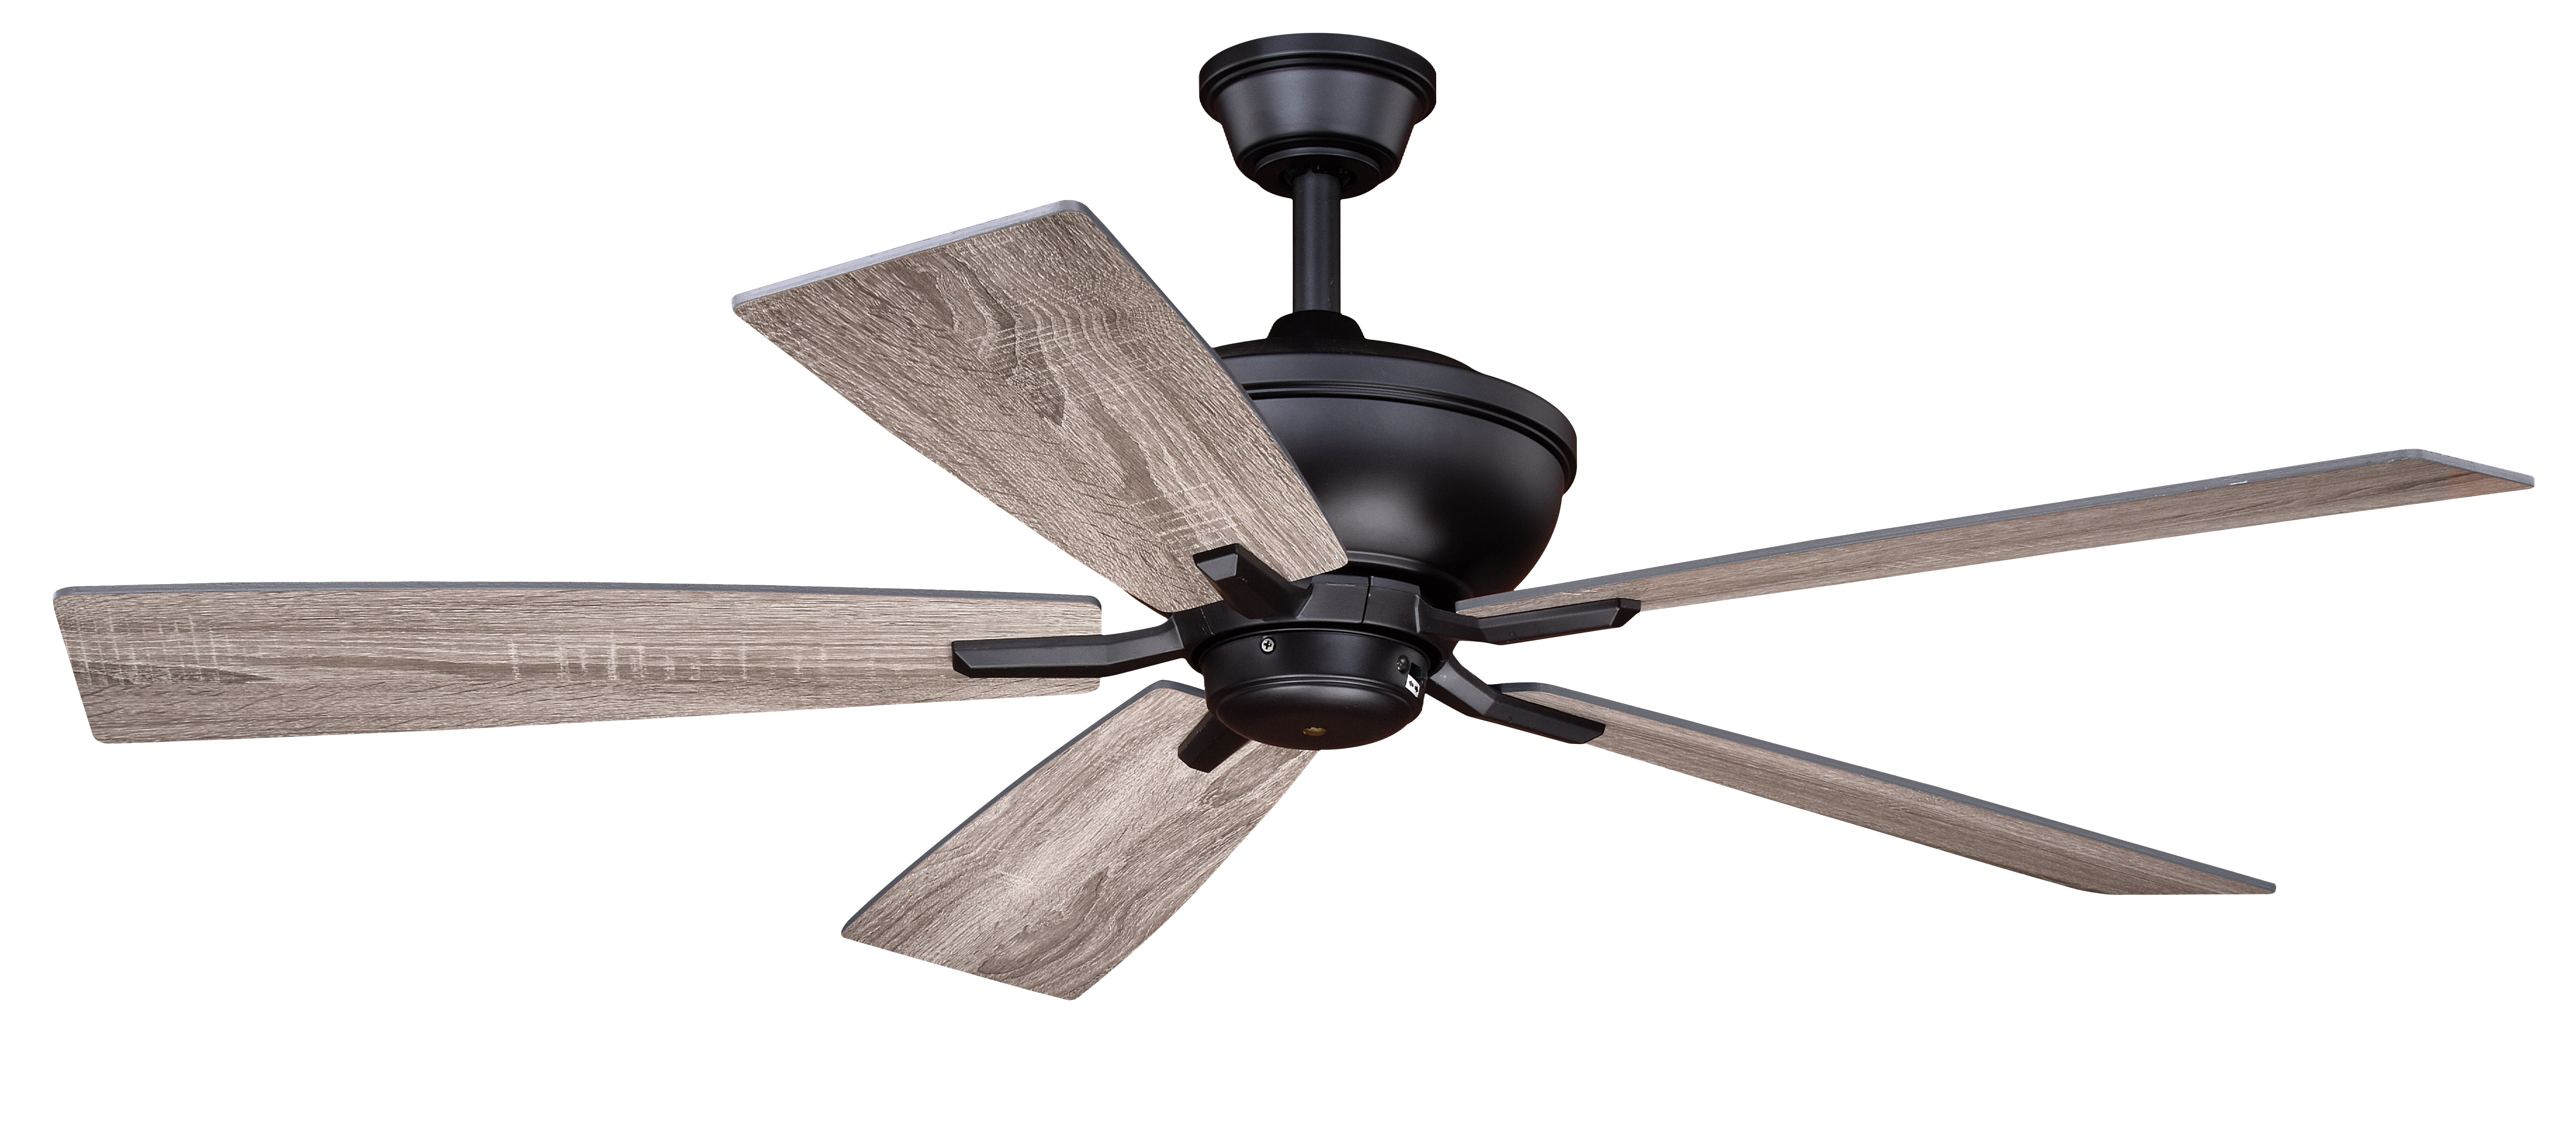 "Clybourn 5 Blade Ceiling Fans With Regard To Well Liked 52"" Hirsch 5 Blade Ceiling Fan With Remote, Light Kit Included (View 3 of 20)"